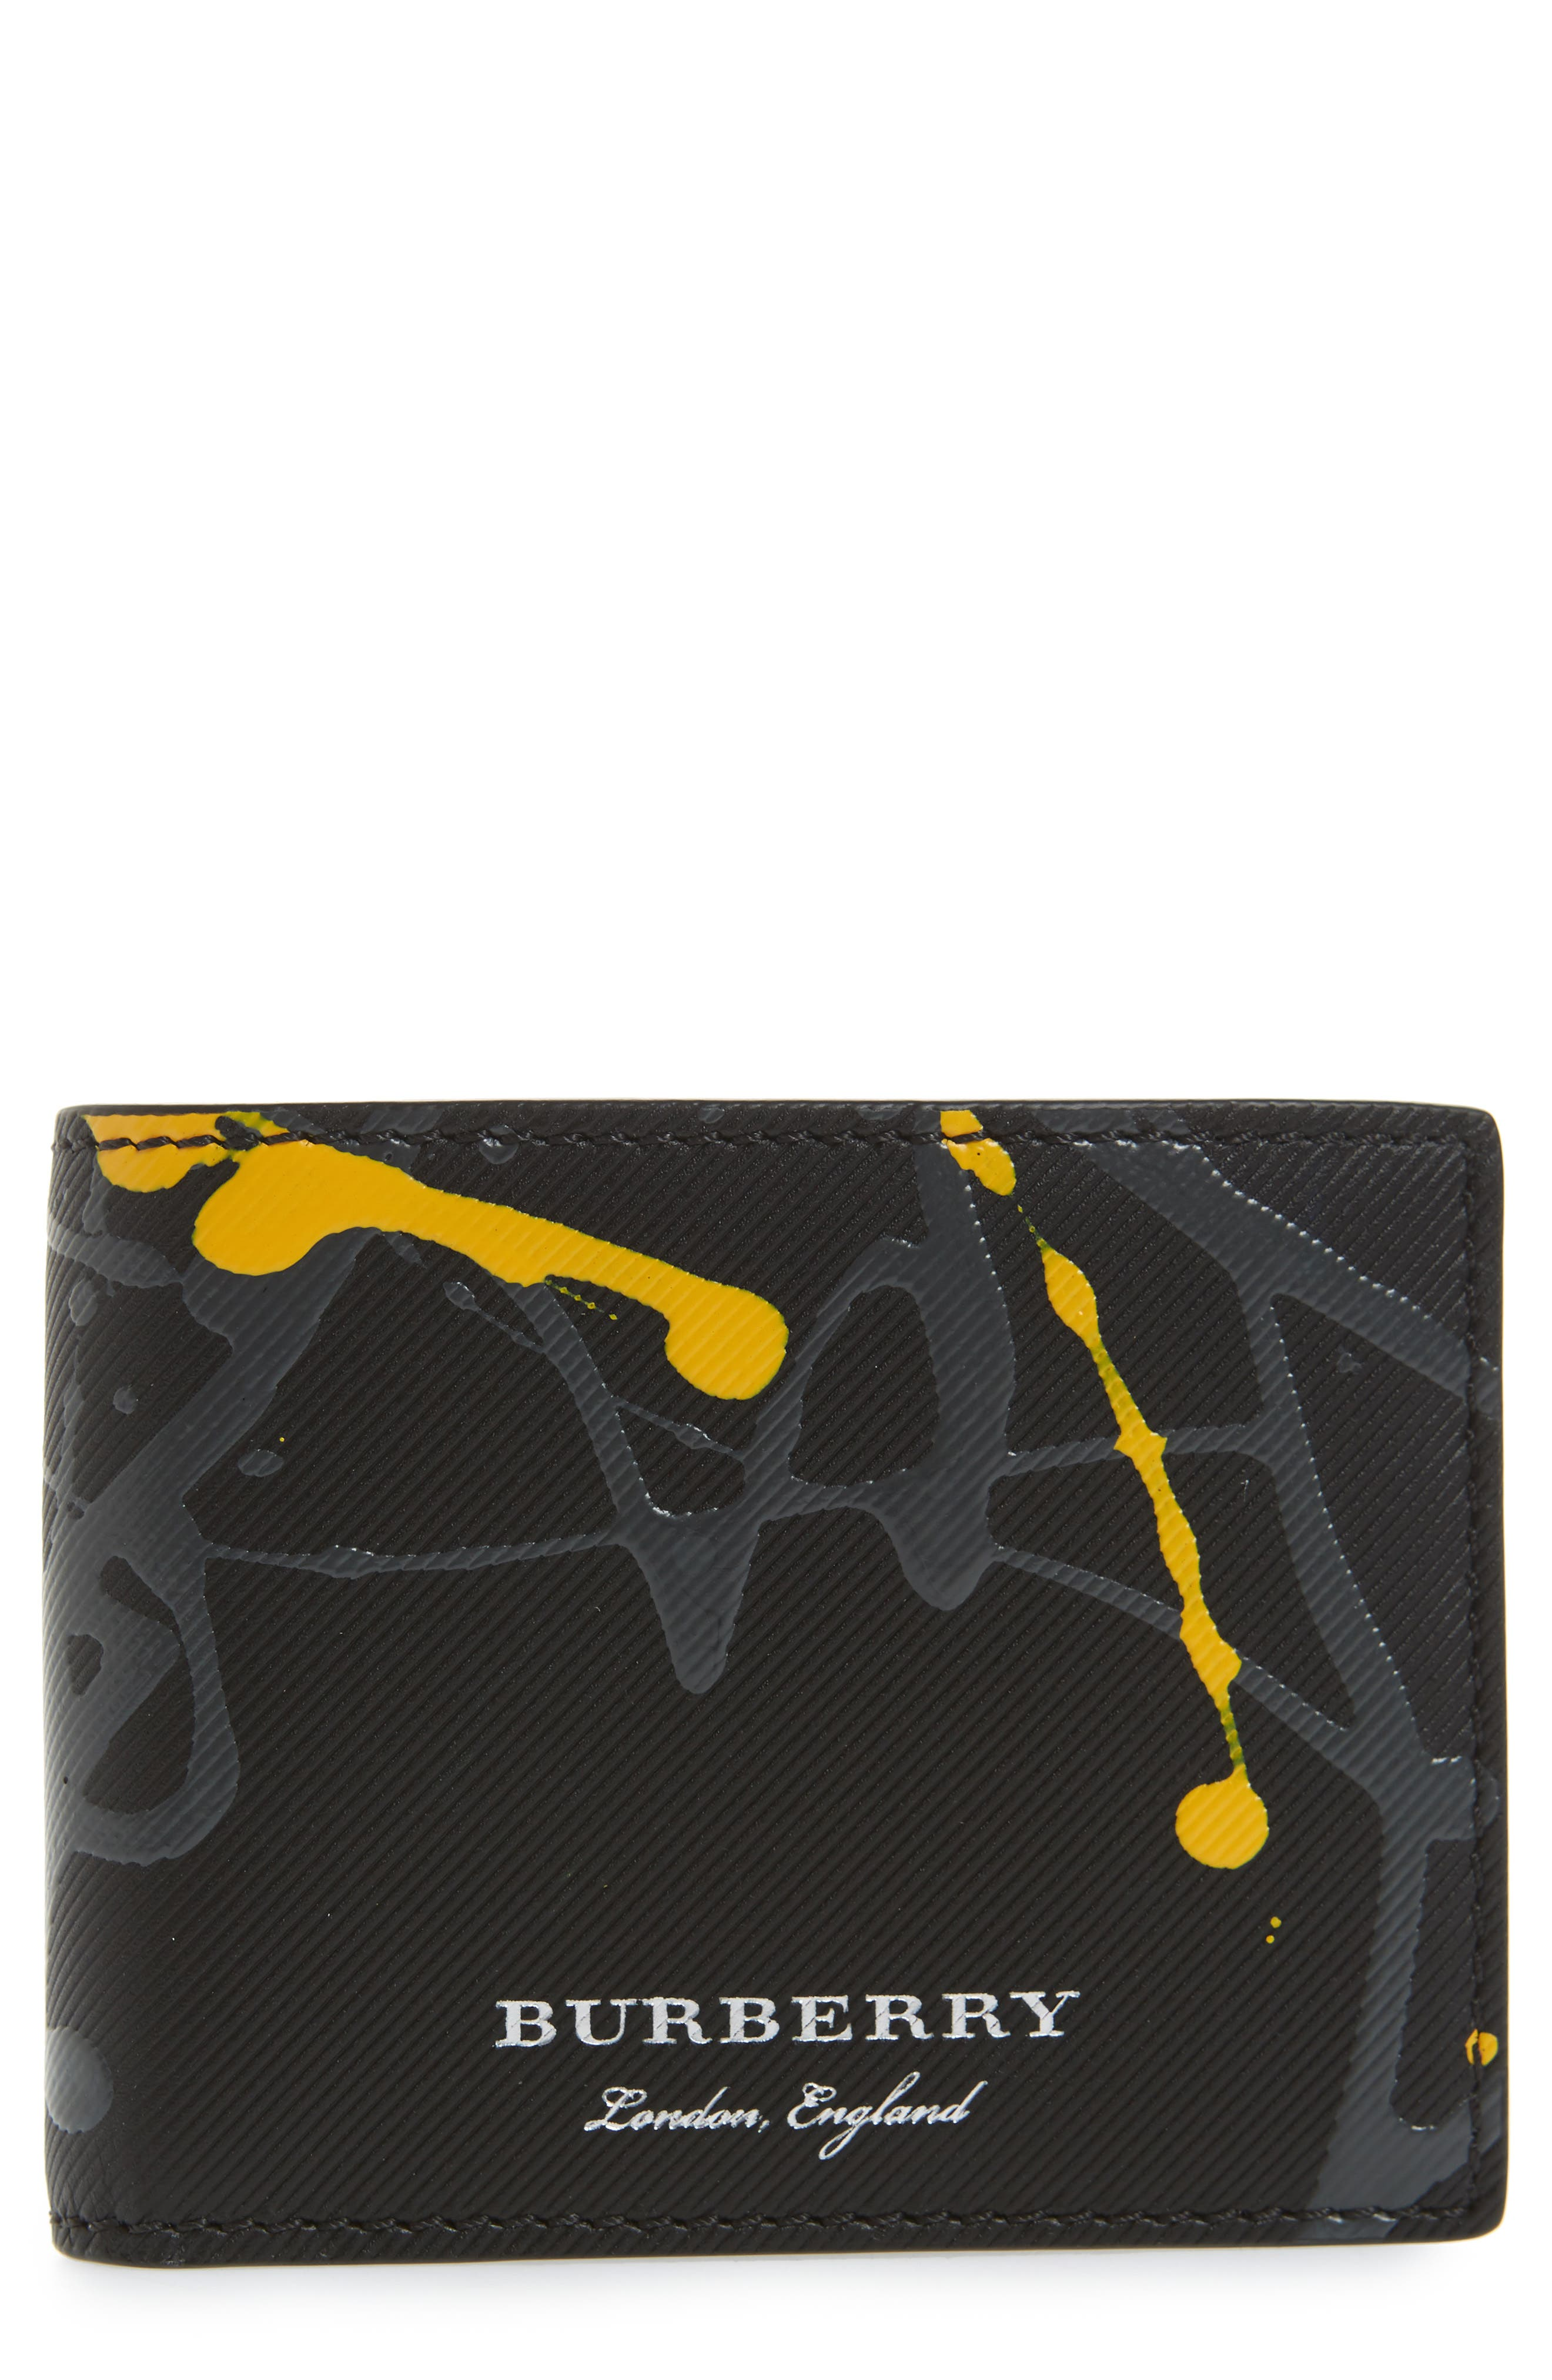 Burberry Trench Splash Leather Wallet